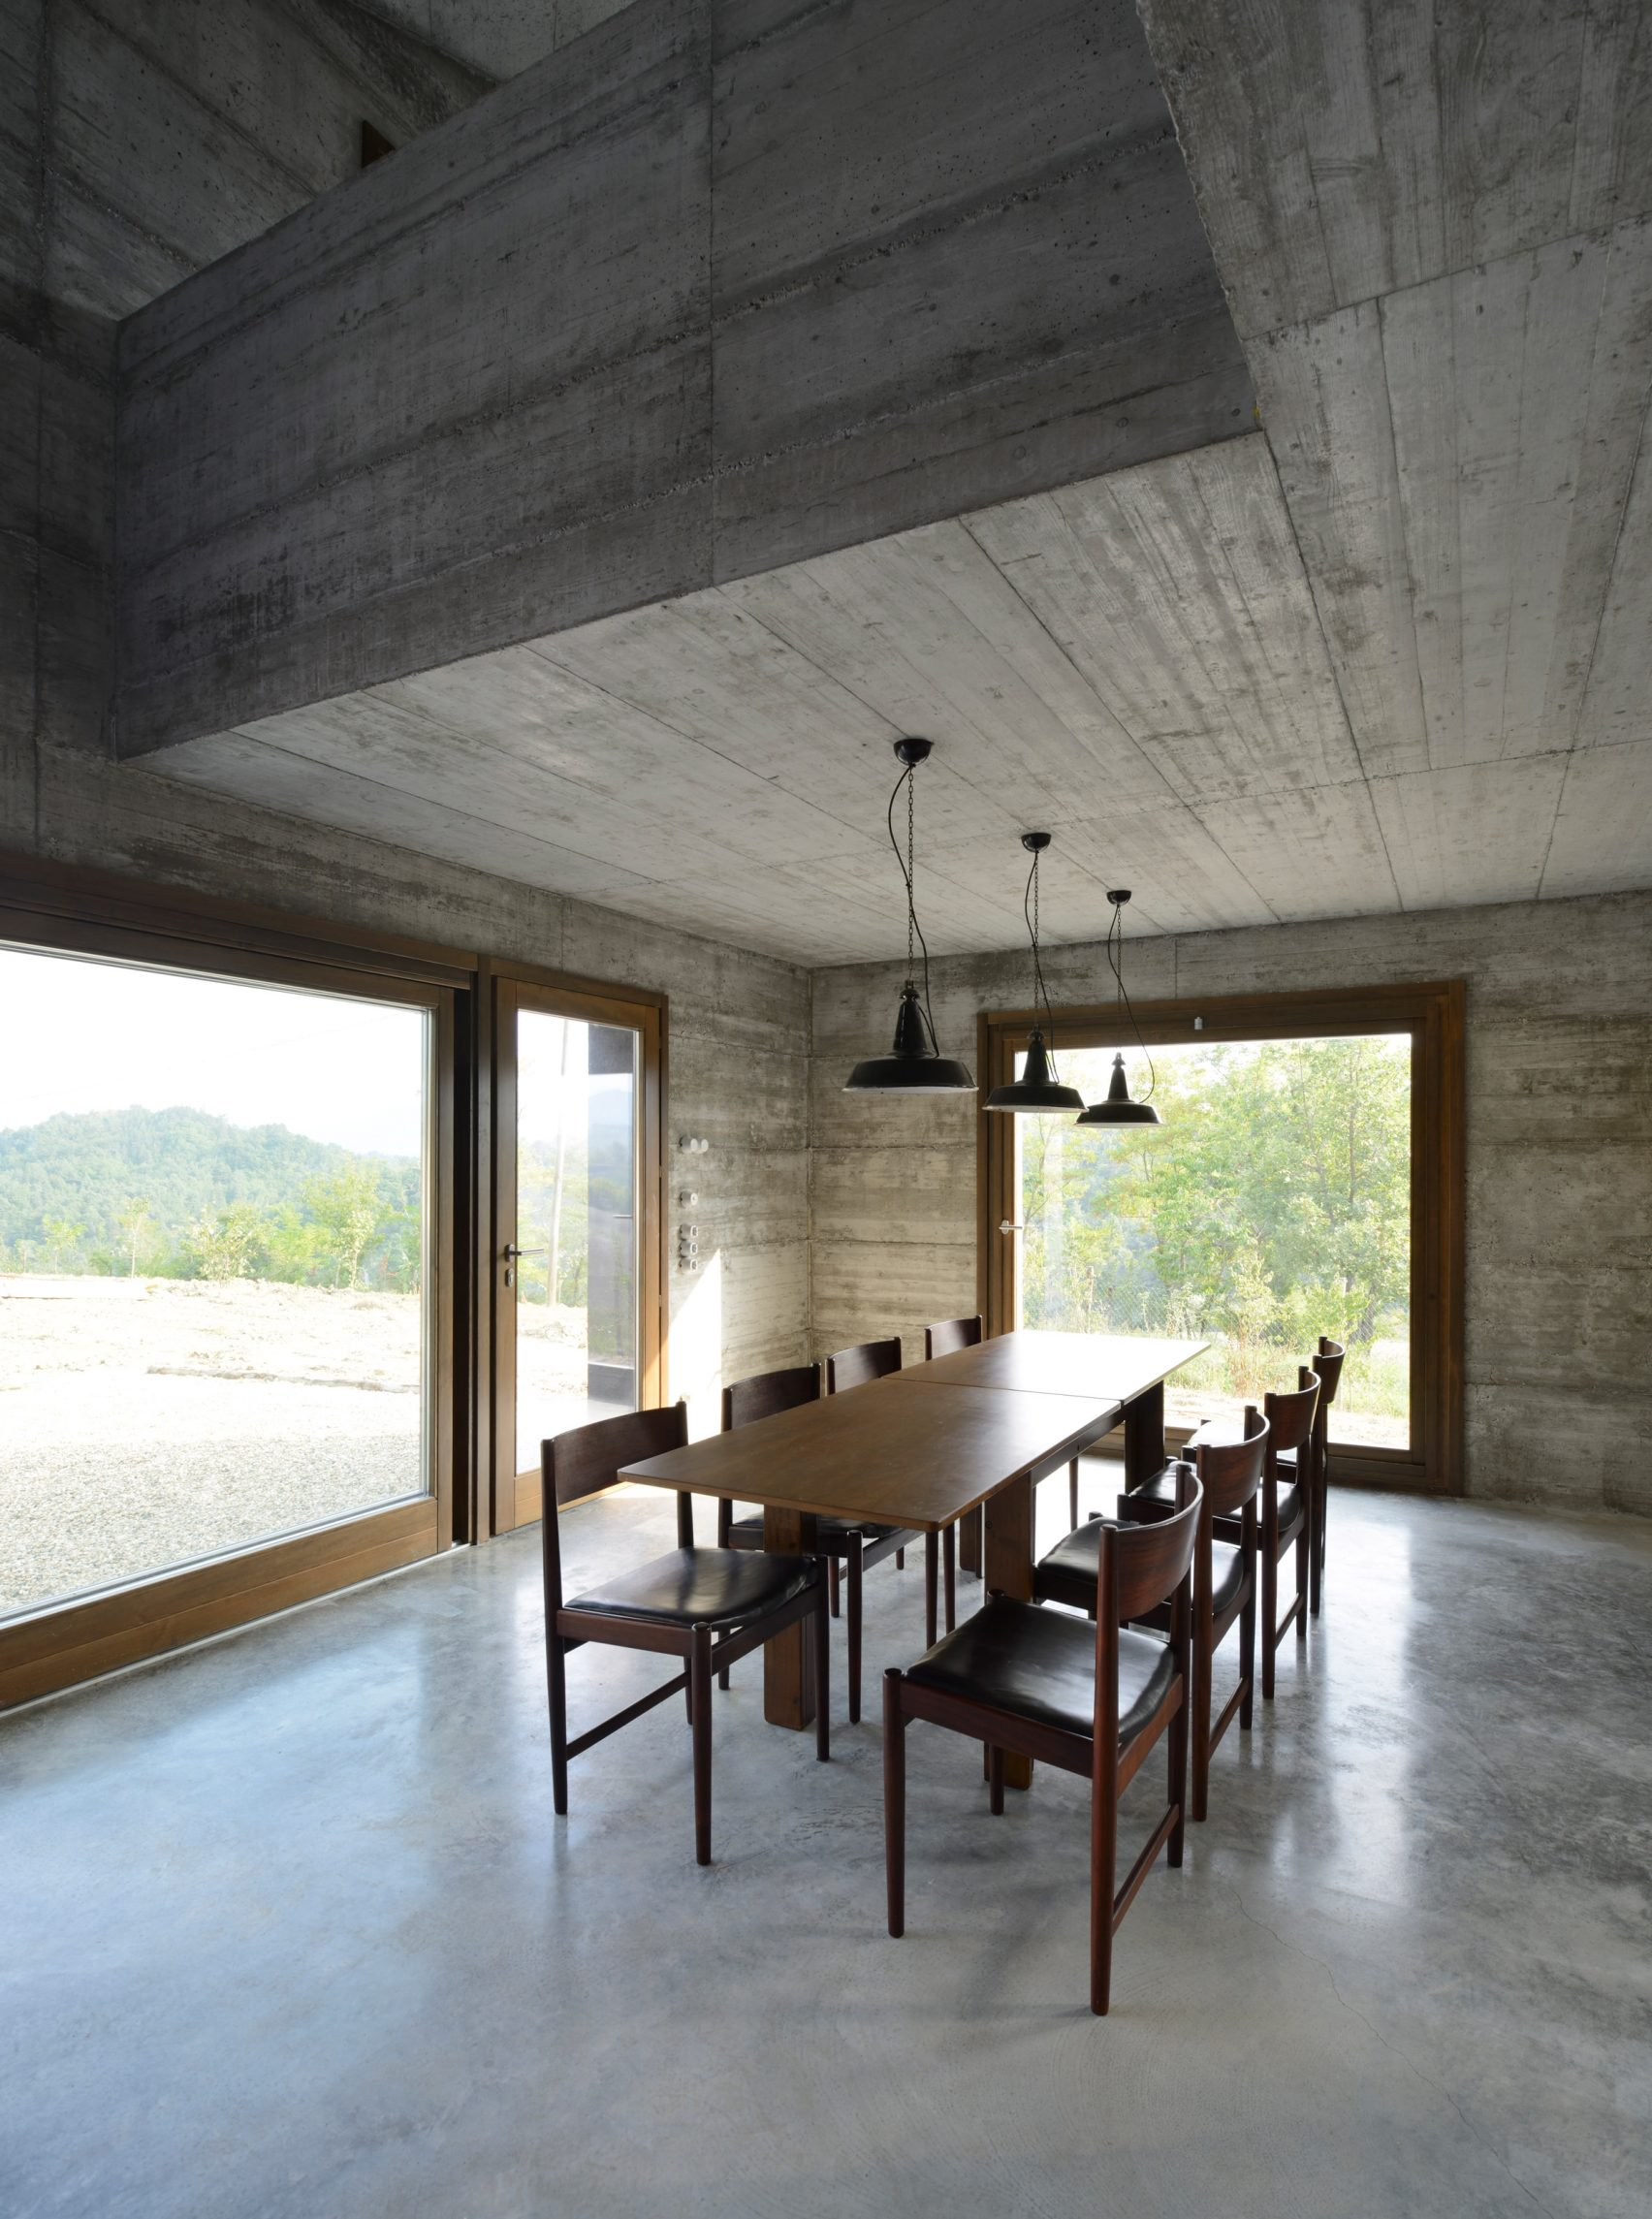 Cuboid concrete holiday home rises in northern Italy